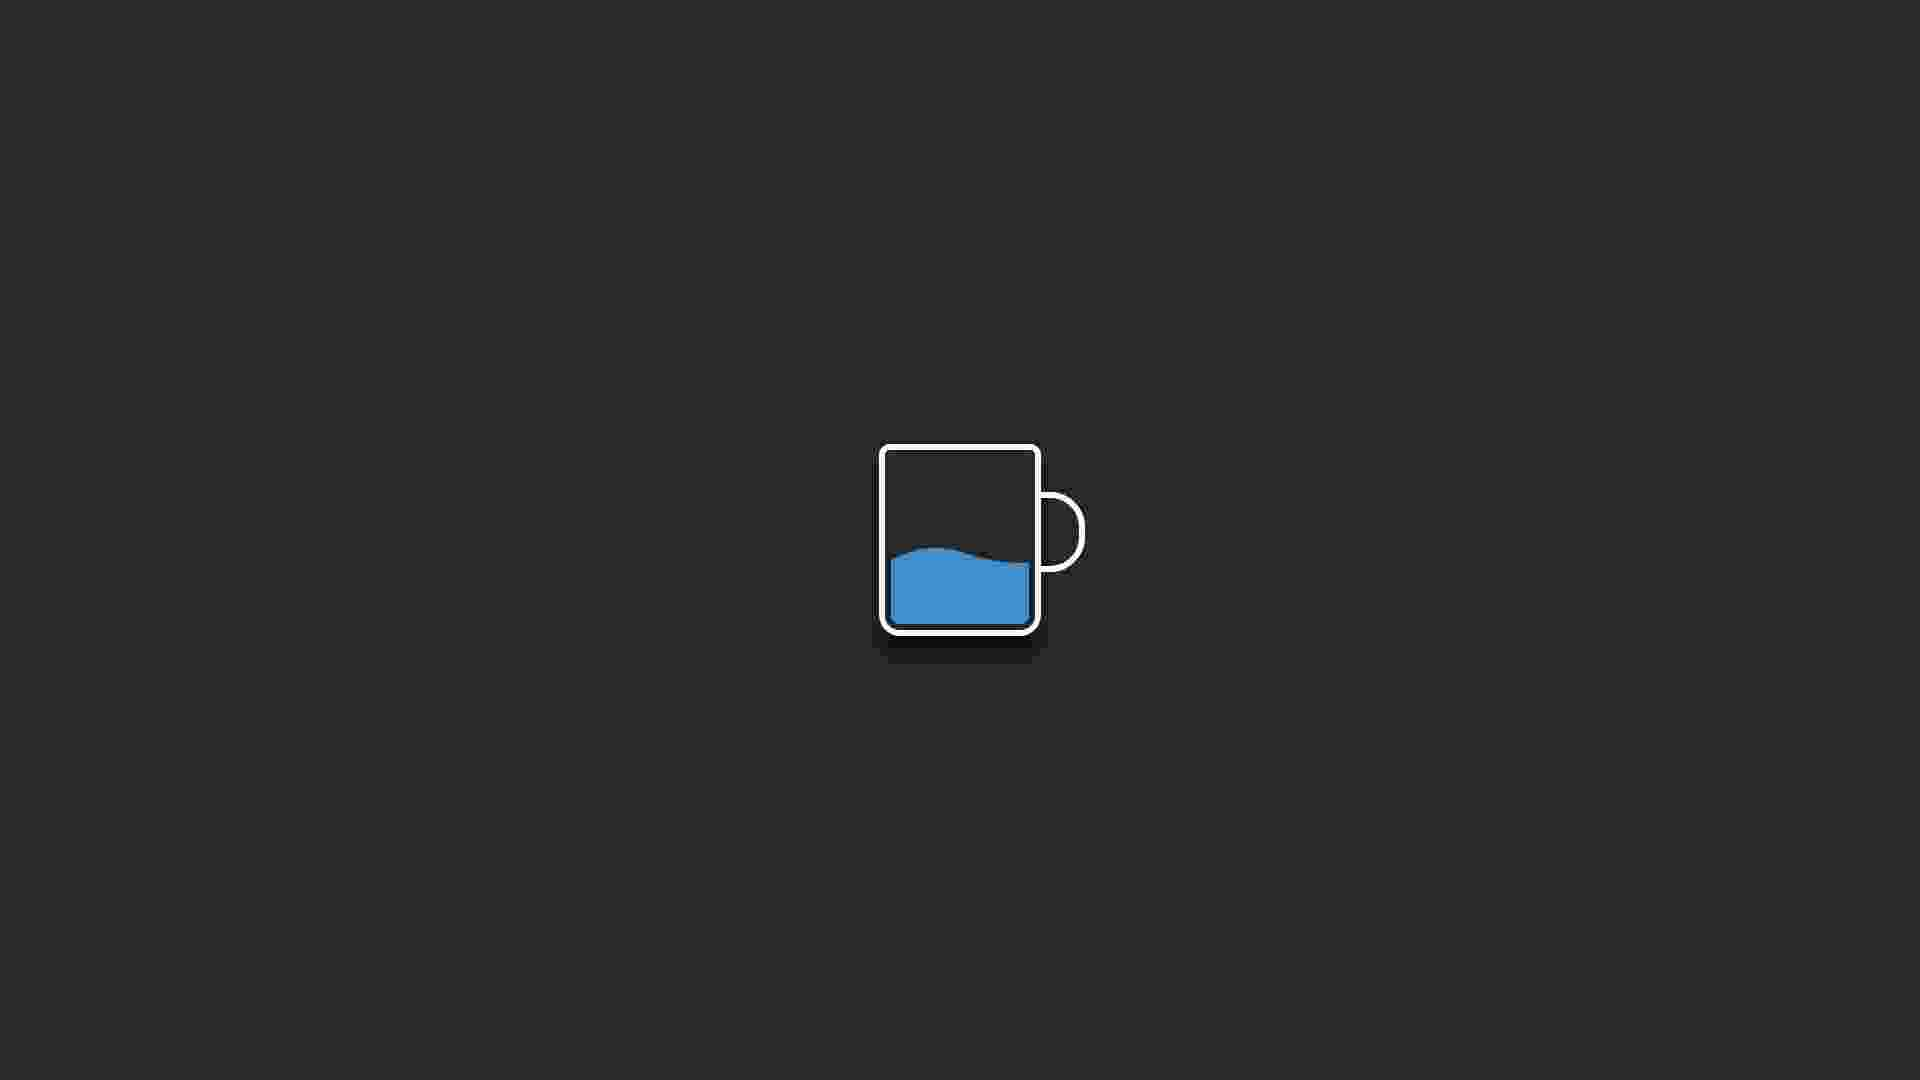 Loading - Animated cup of water